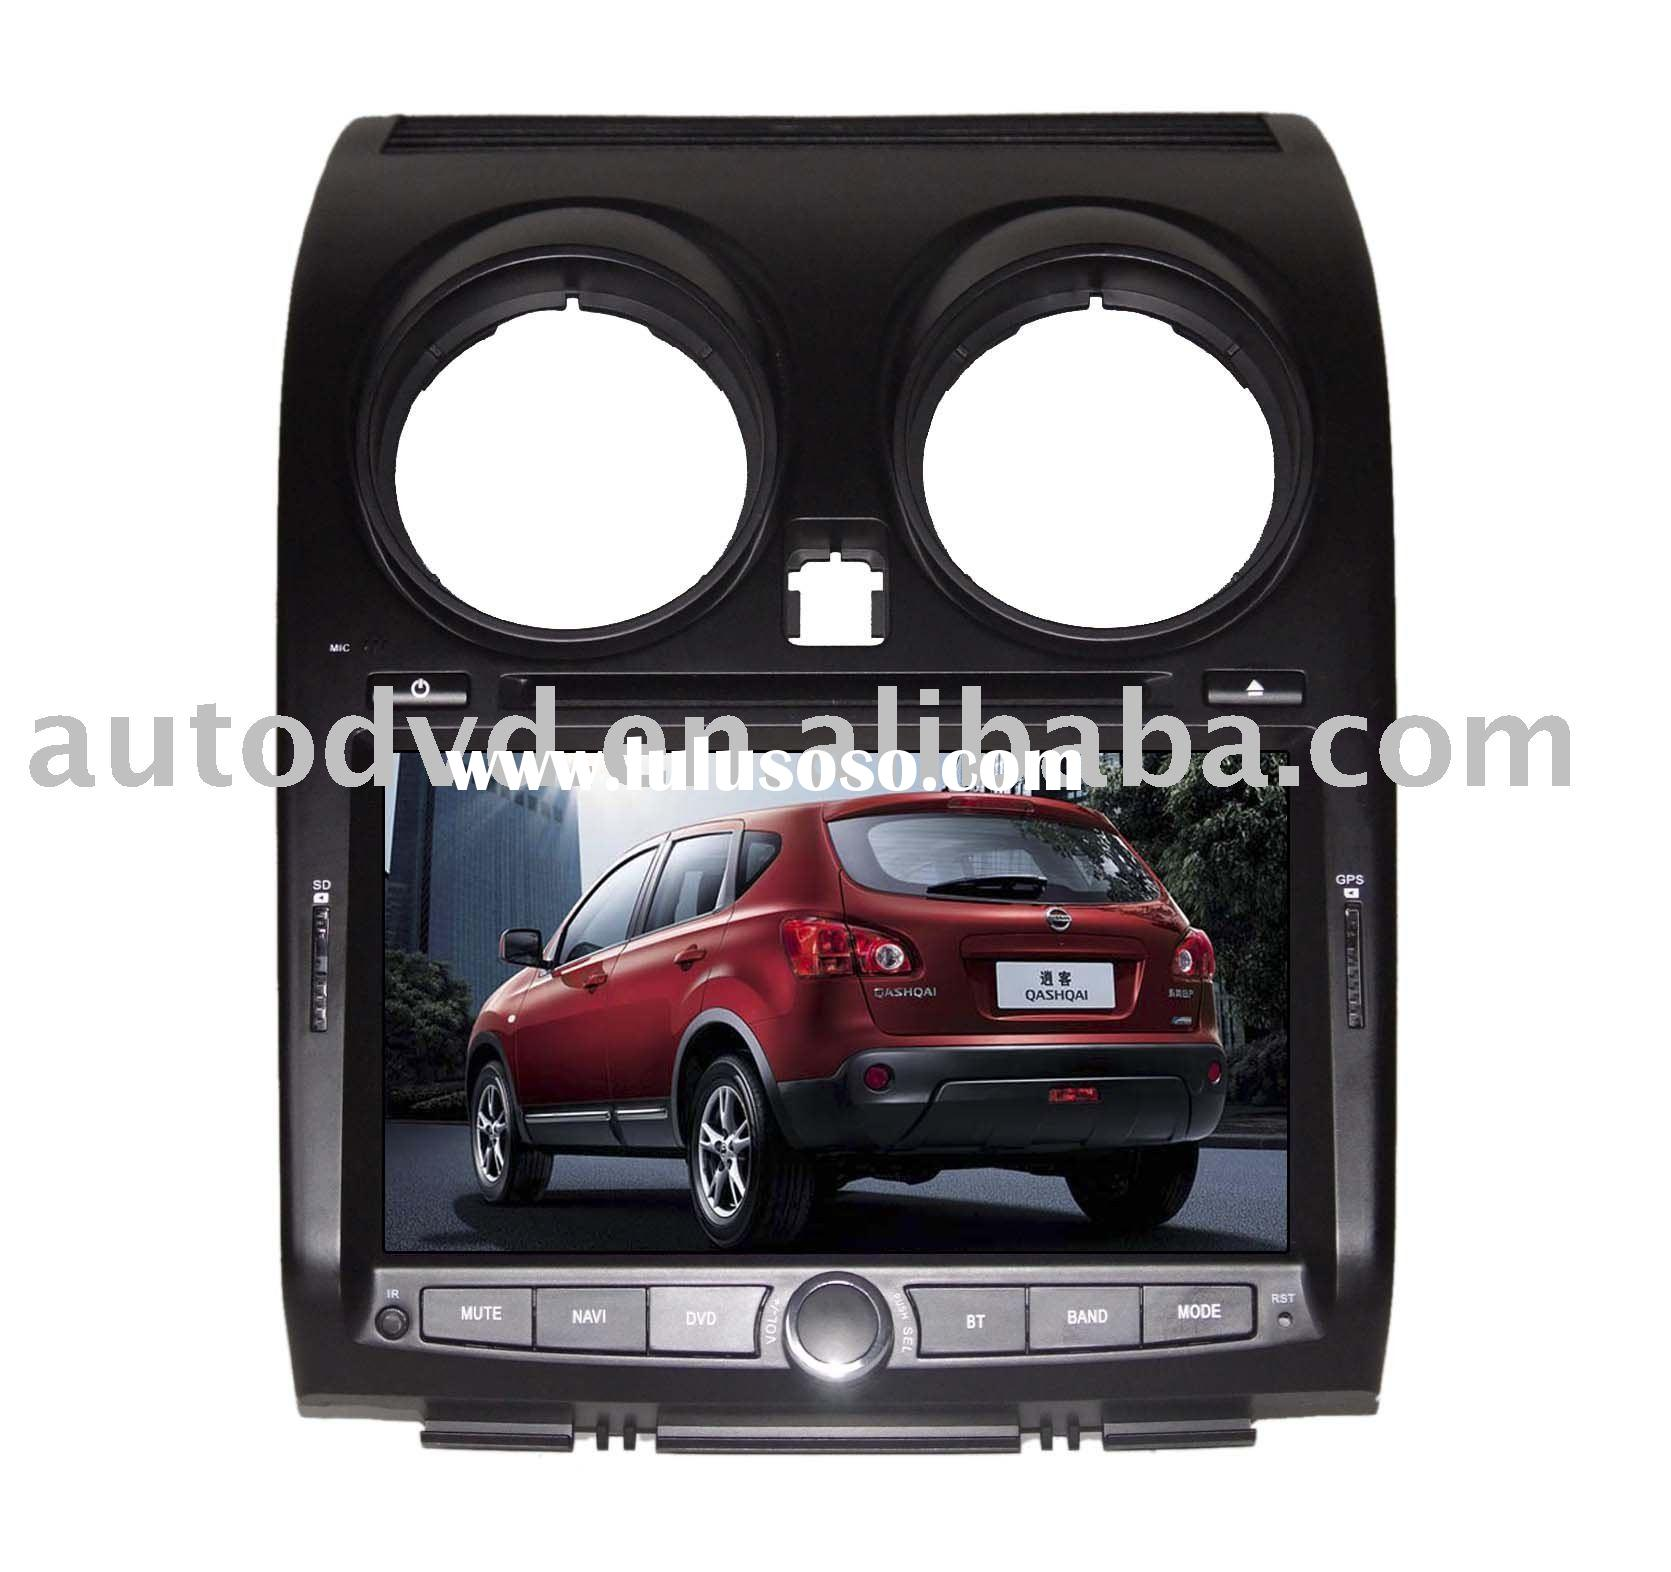 car DVD with window CE 6.0 system for Nissan Qashqai 2010 latest models